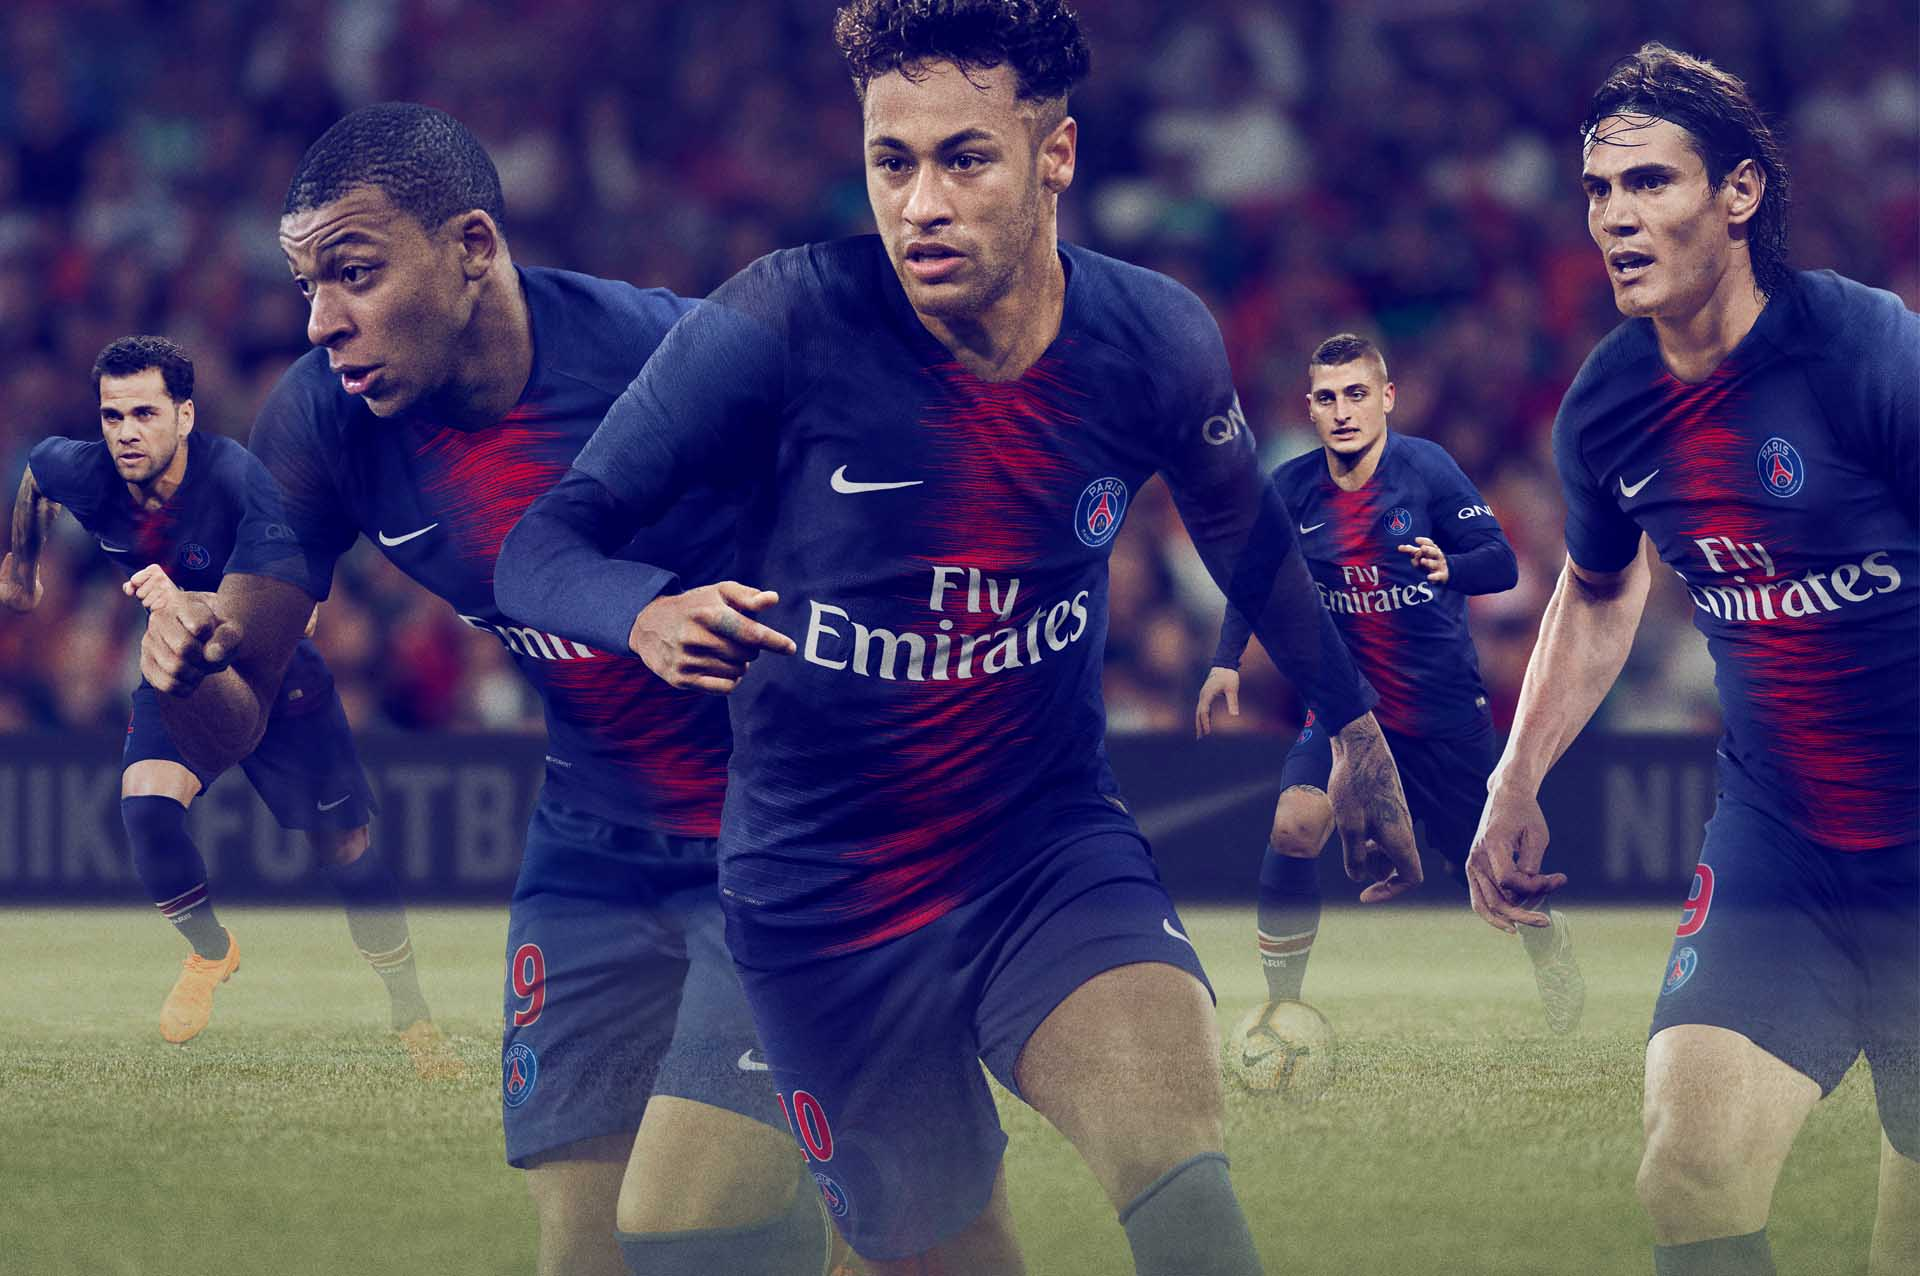 c481d9122 Nike Launch The PSG 2018 19 Home Shirt - SoccerBible